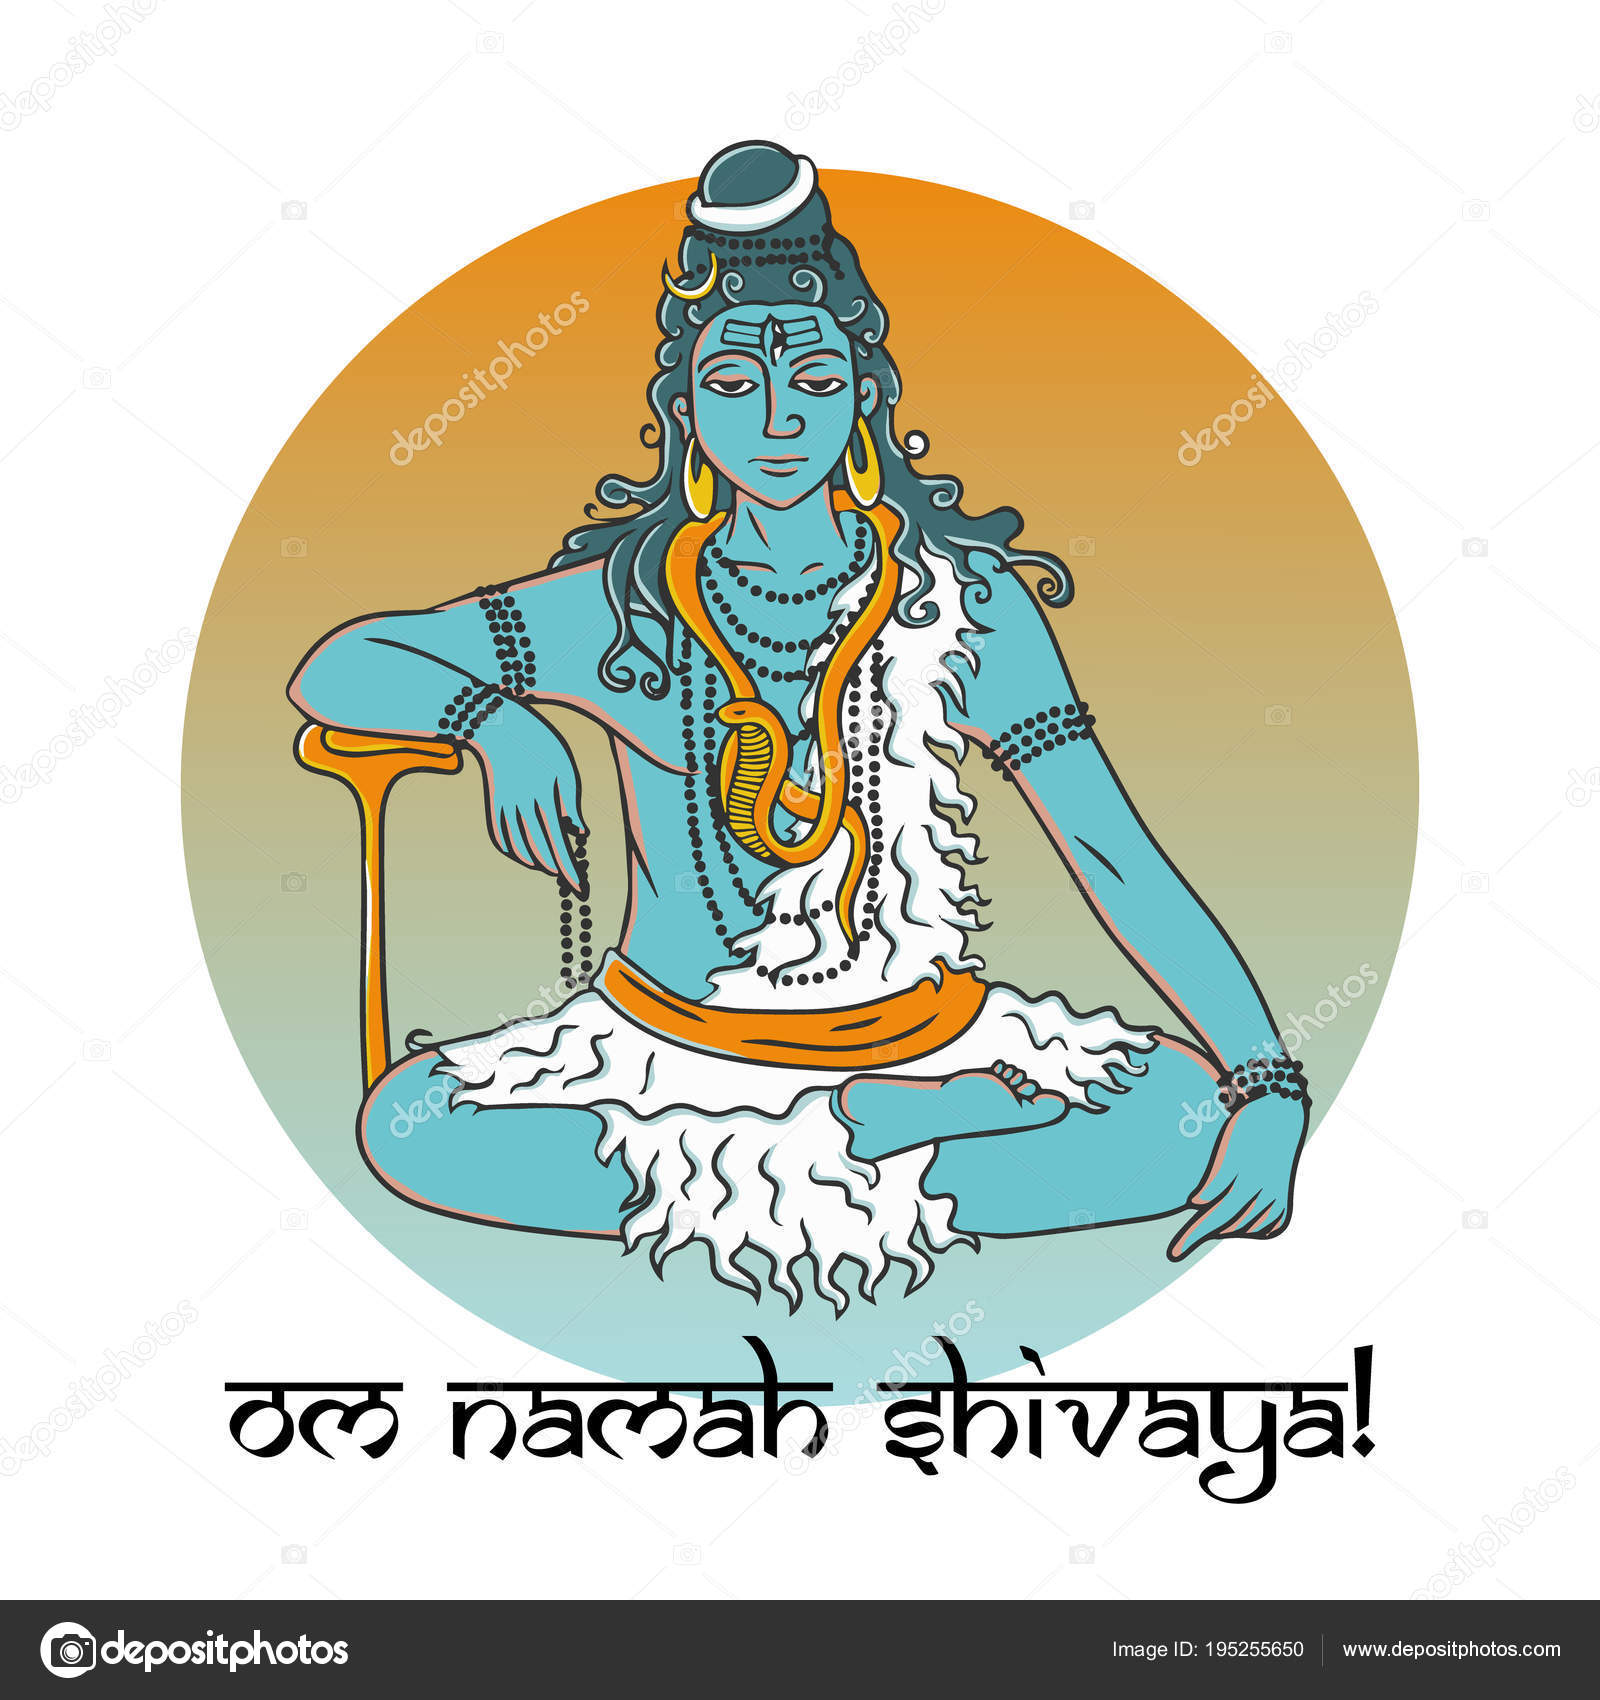 lord shiva cartoon images download